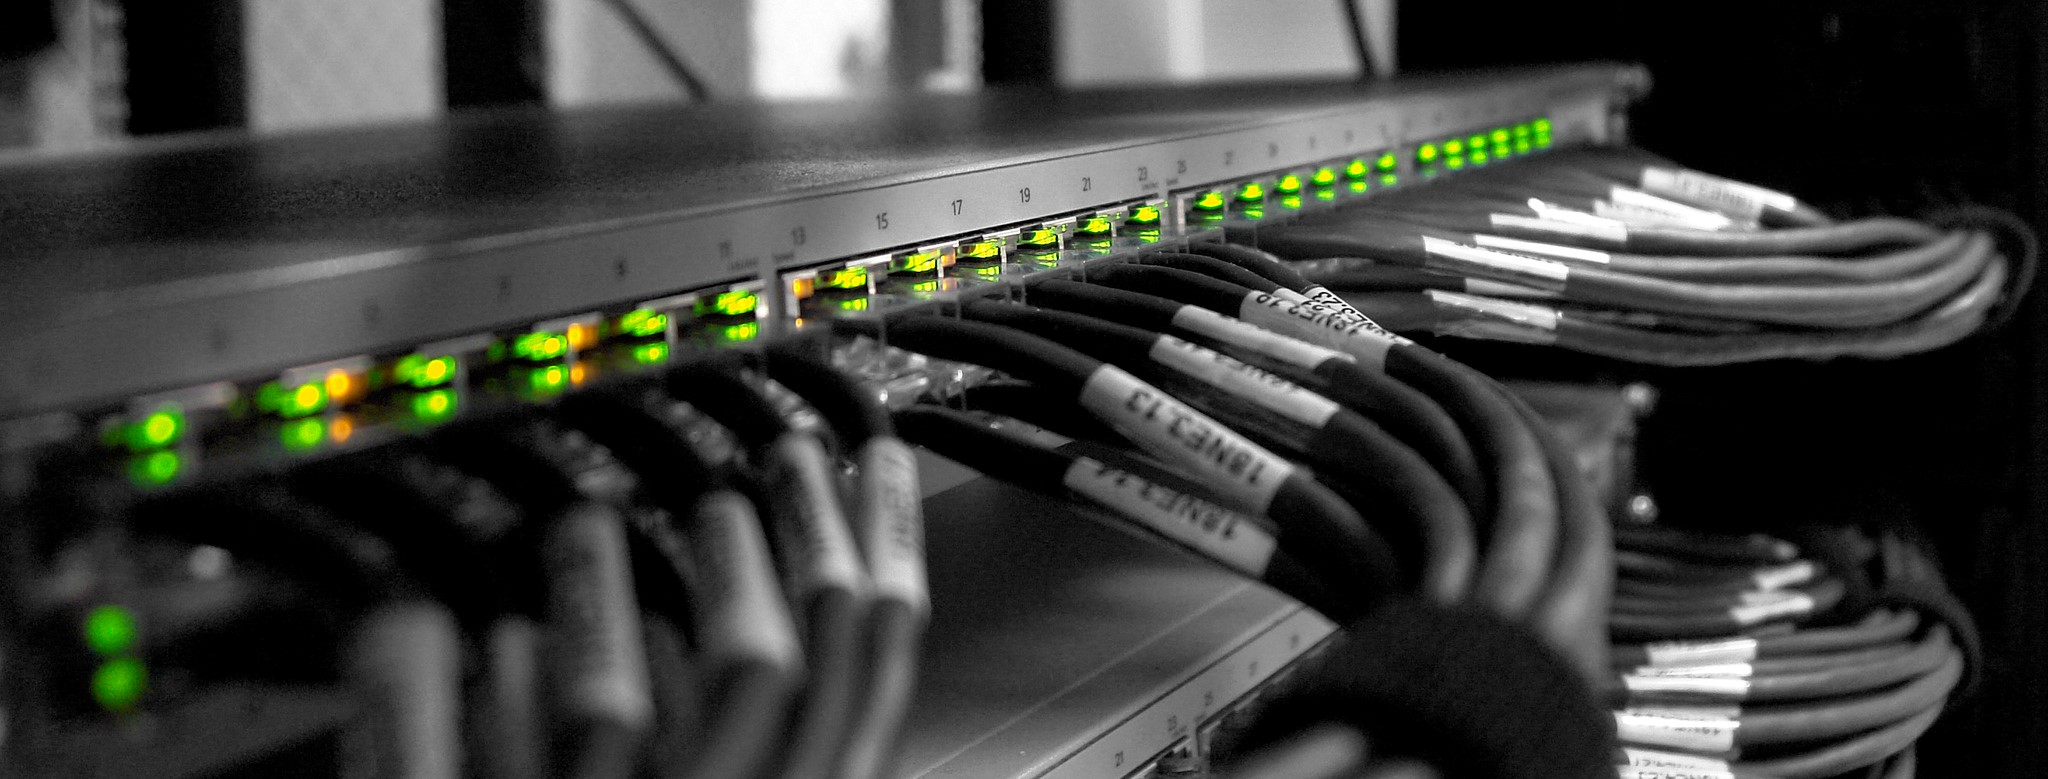 Network switch and cables